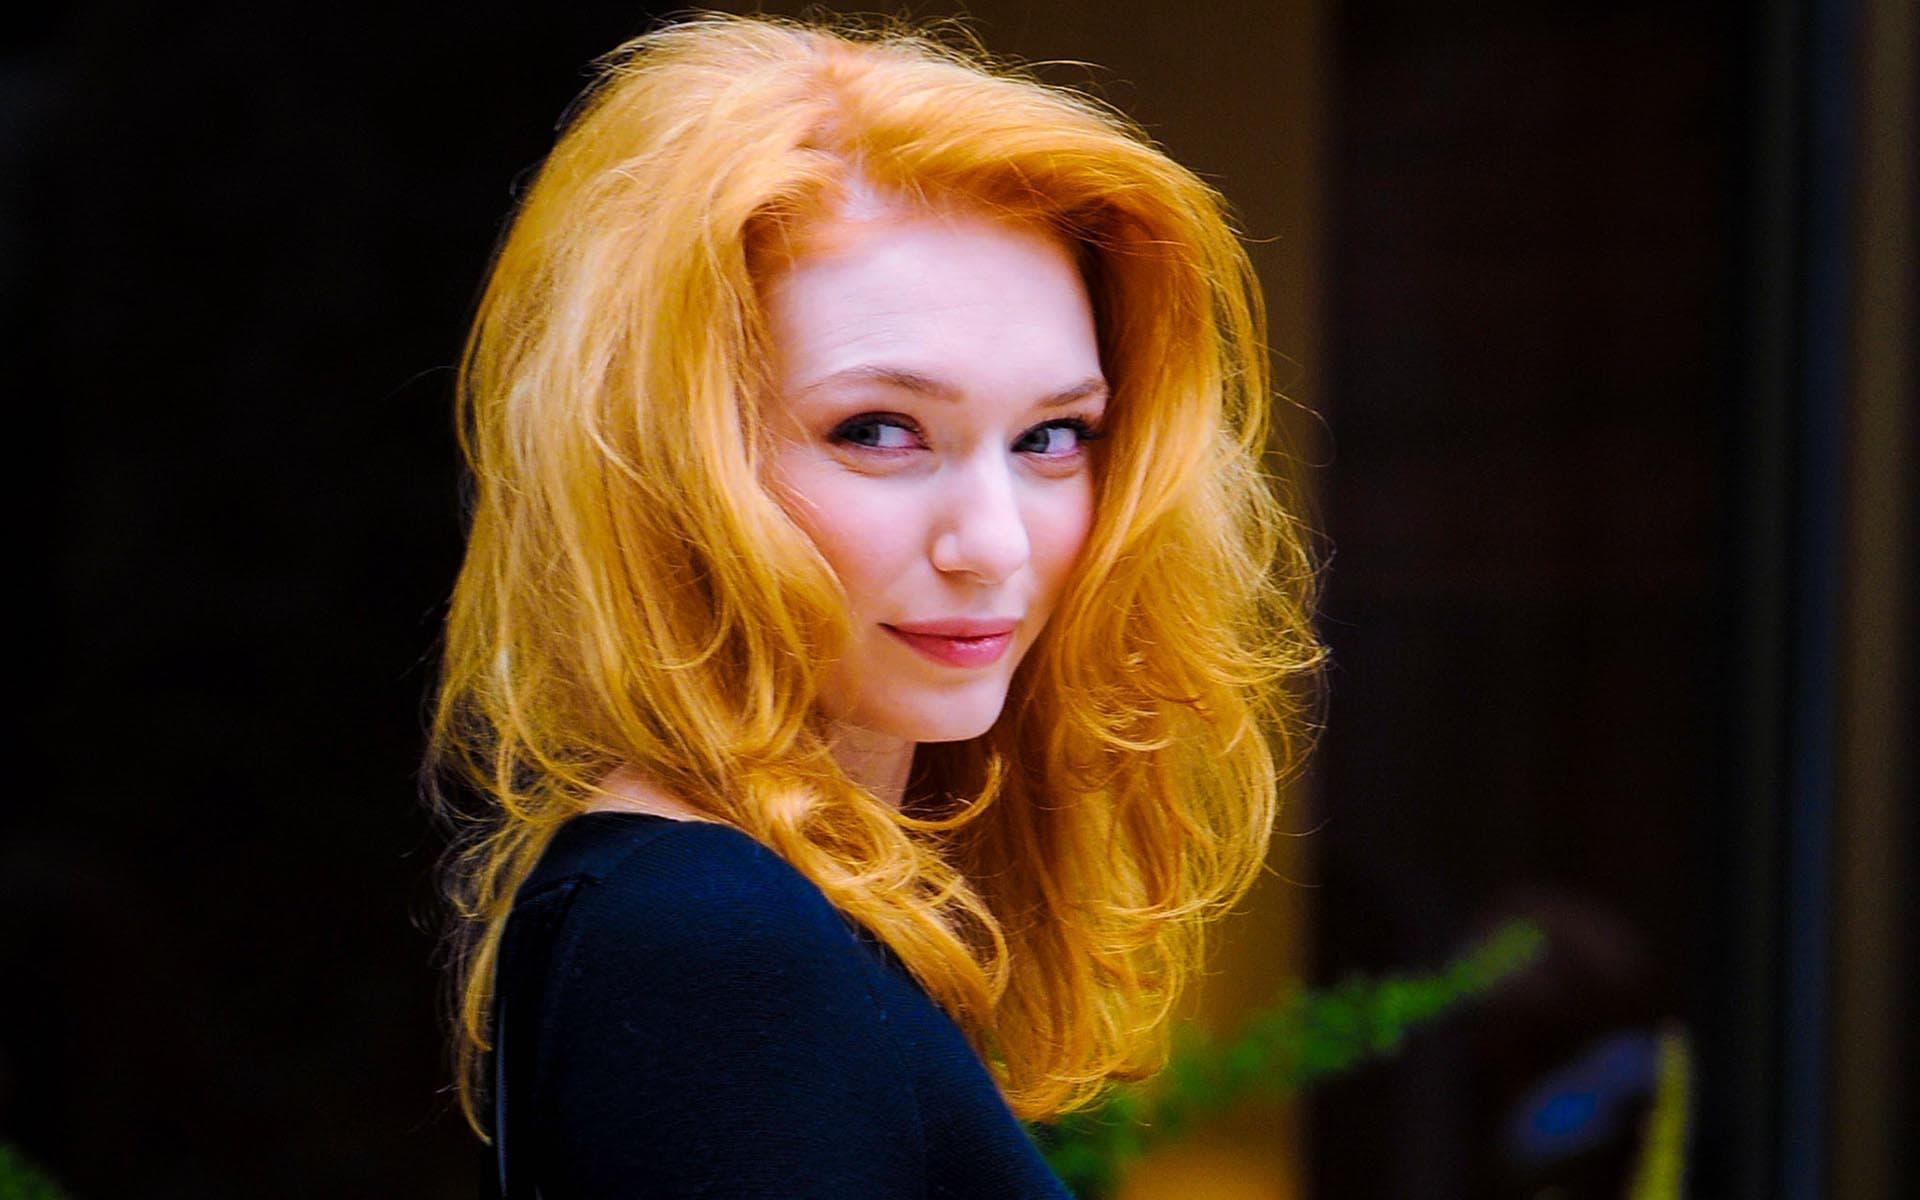 eleanor tomlinson wallpapers images pictures for desktop hd